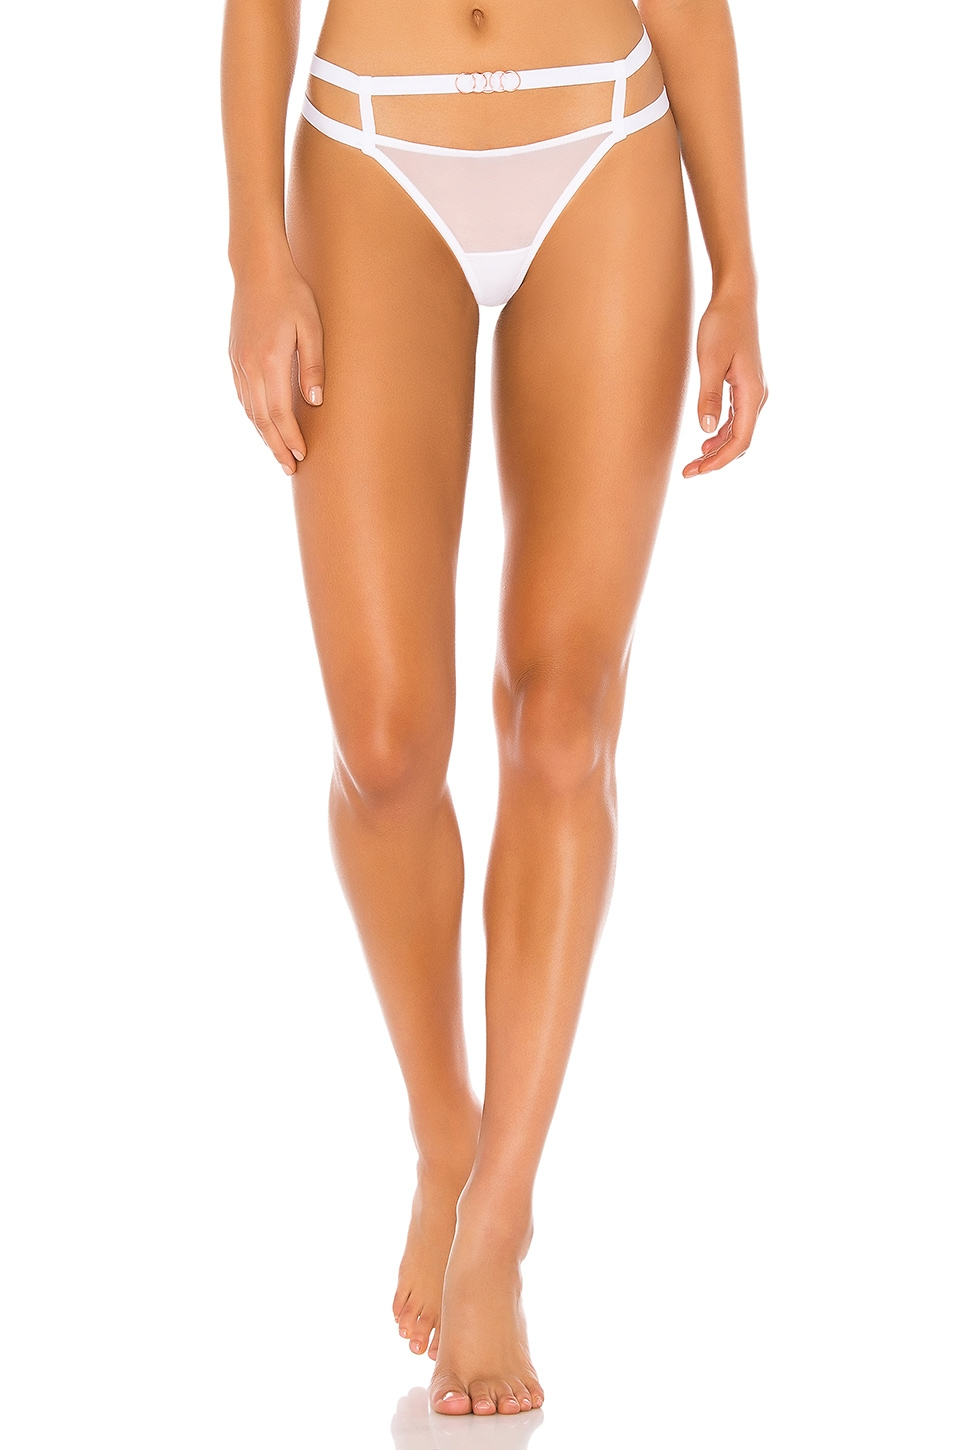 BLUEBELLA Orion Thong in White